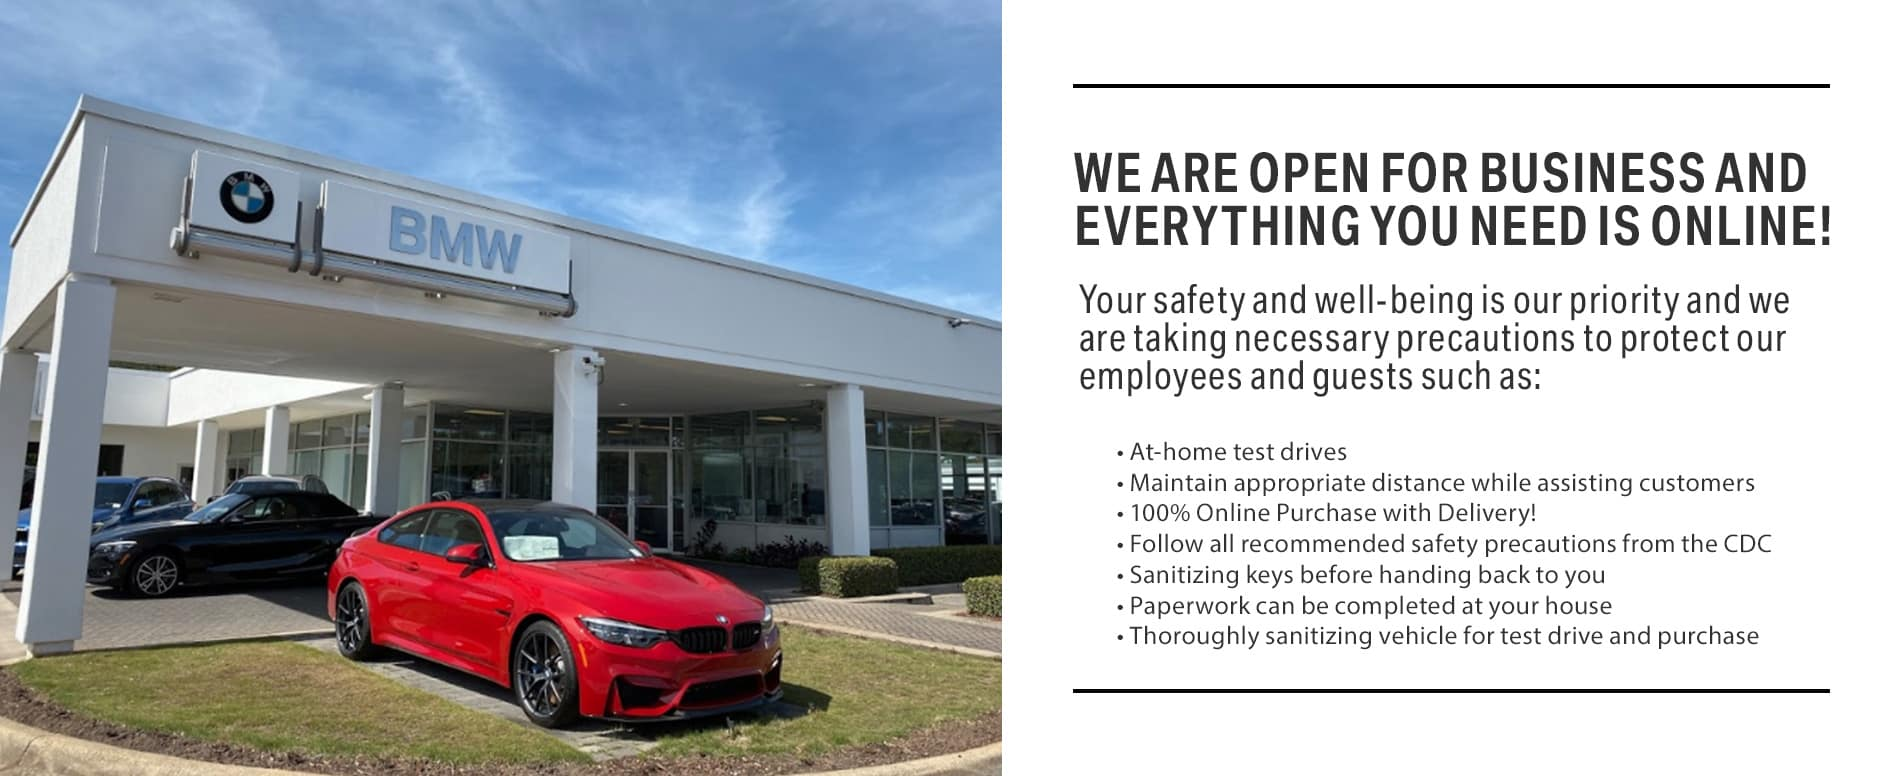 Safety is our priority at BMW of Fort Walton Beach